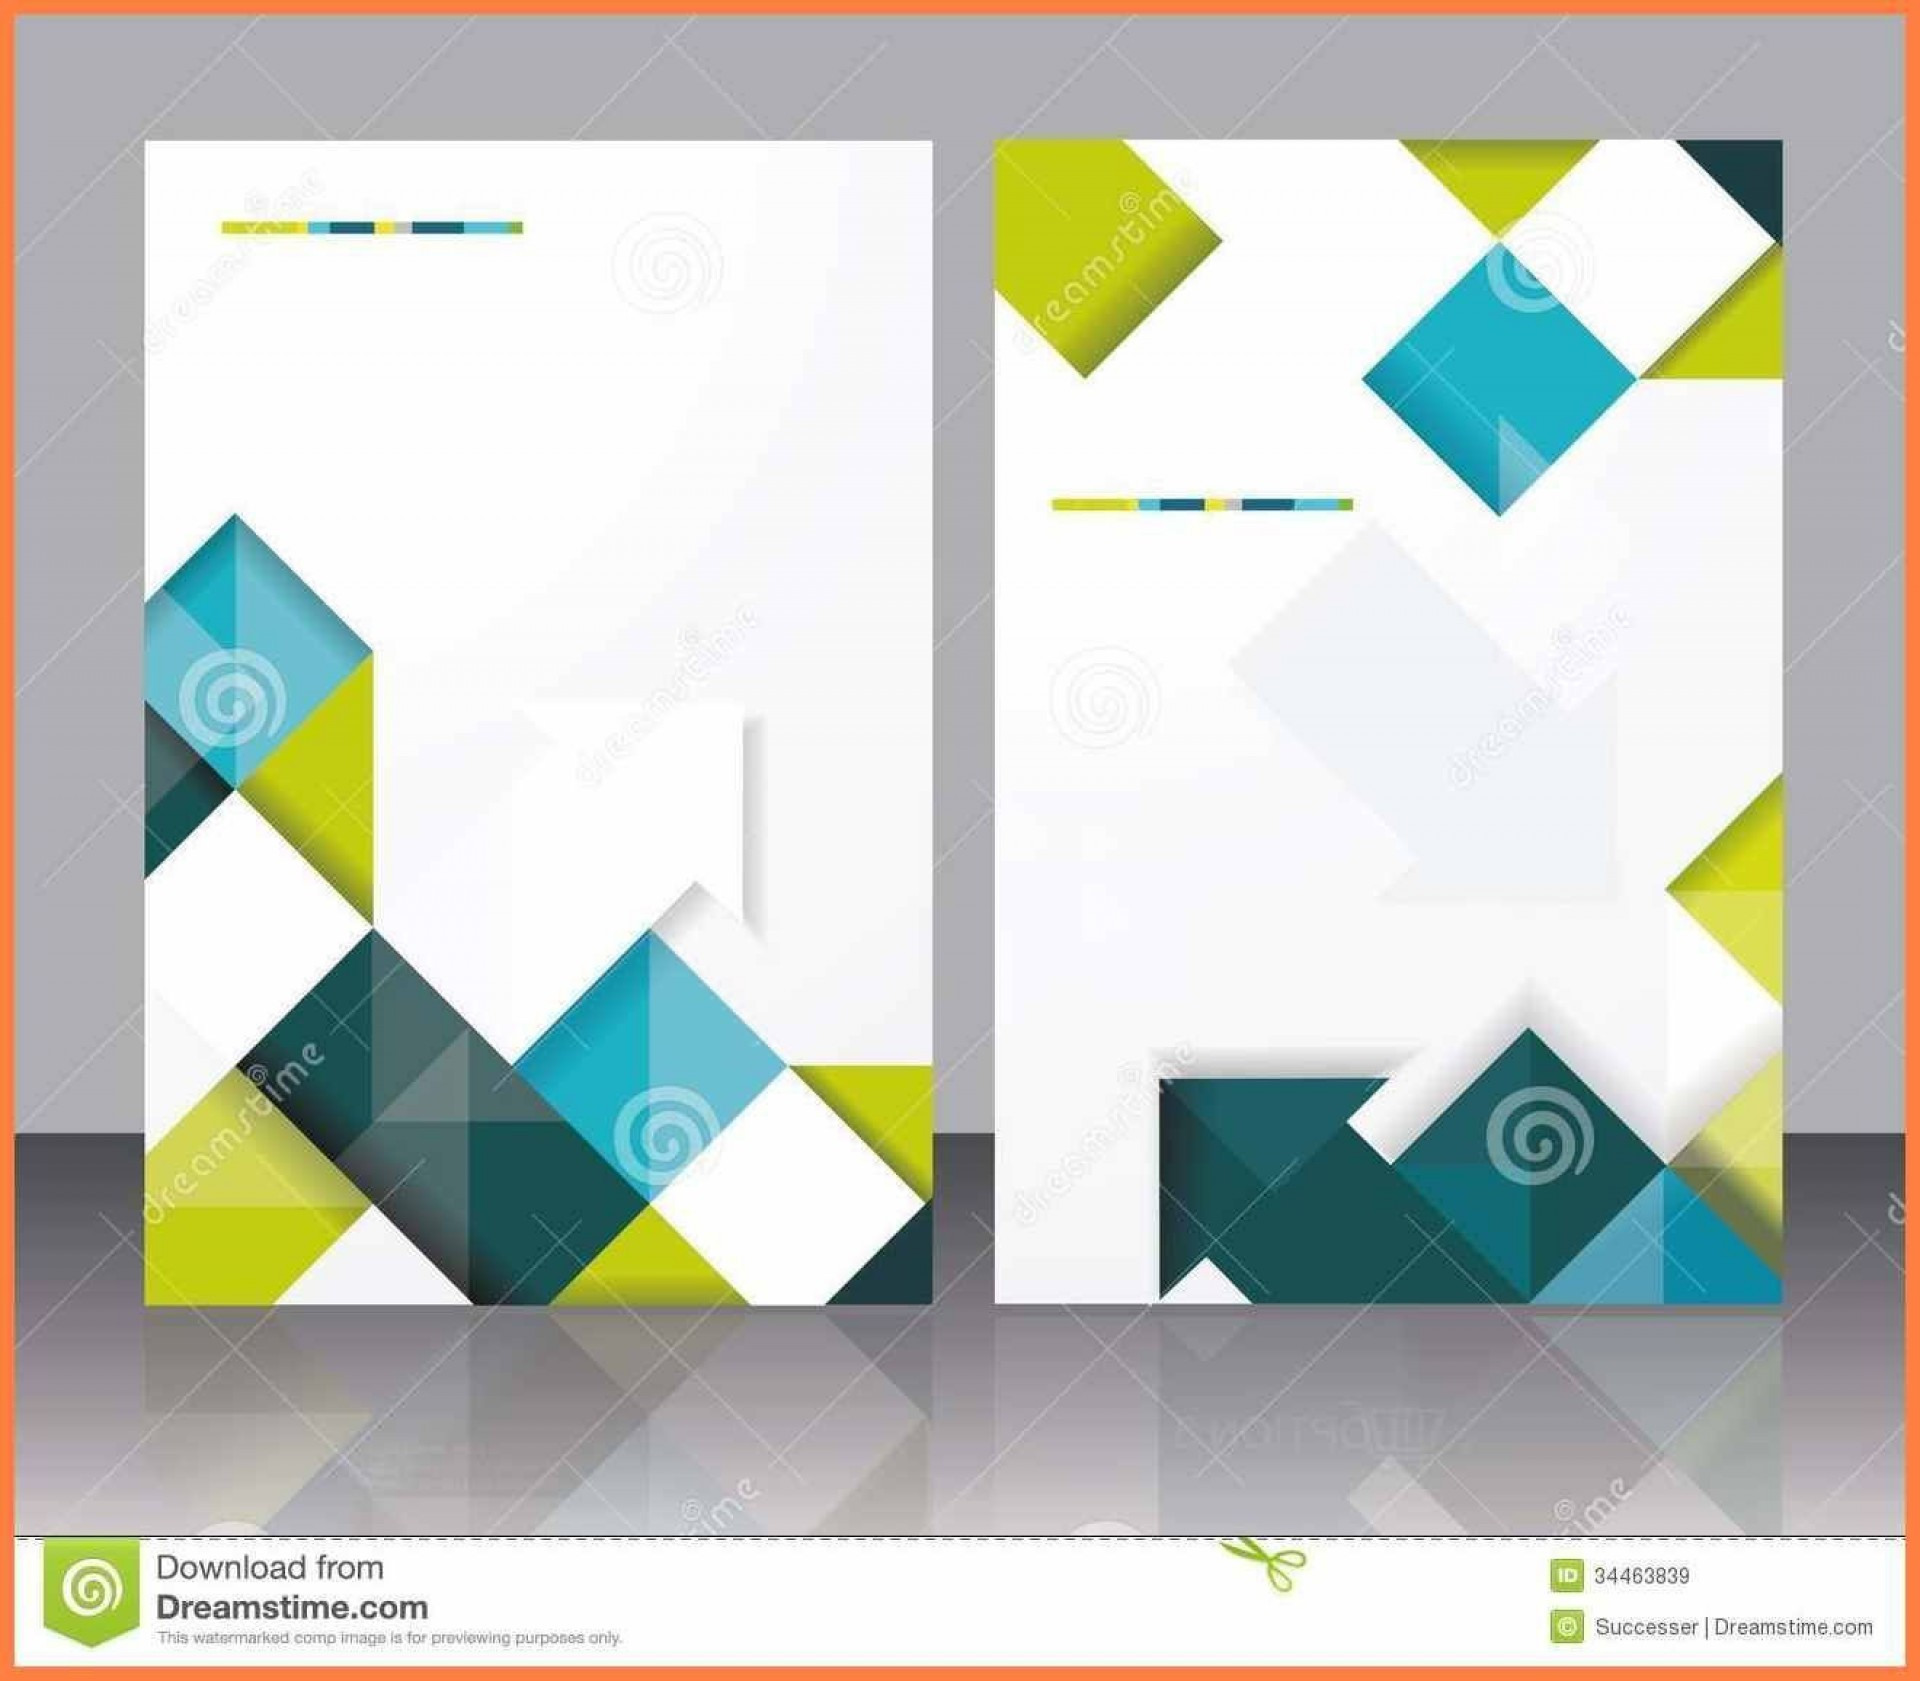 004 Marvelou Download Brochure Template For Word 2007 High Def 1920